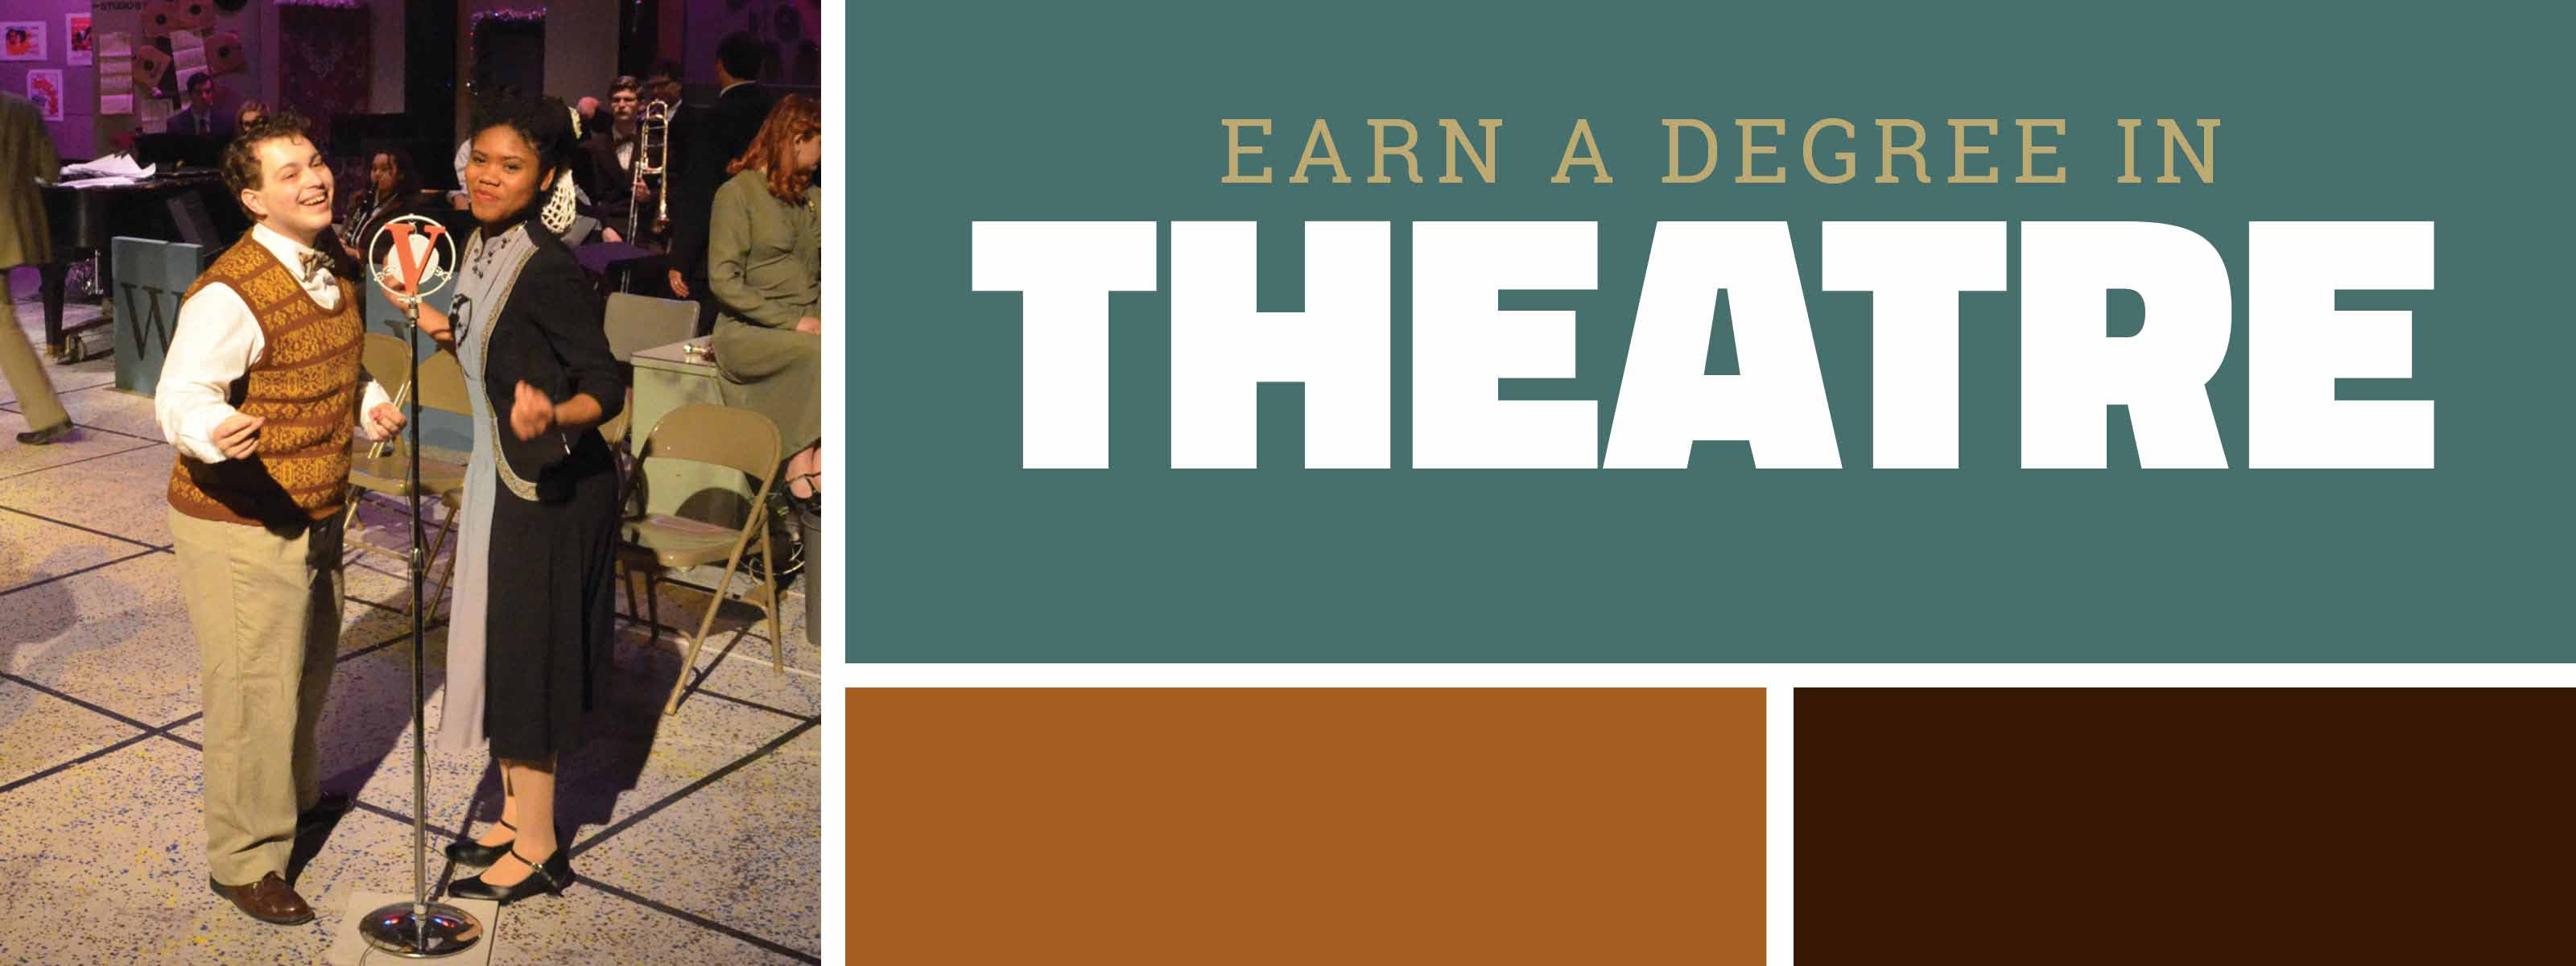 Earn a Degree in Theatre